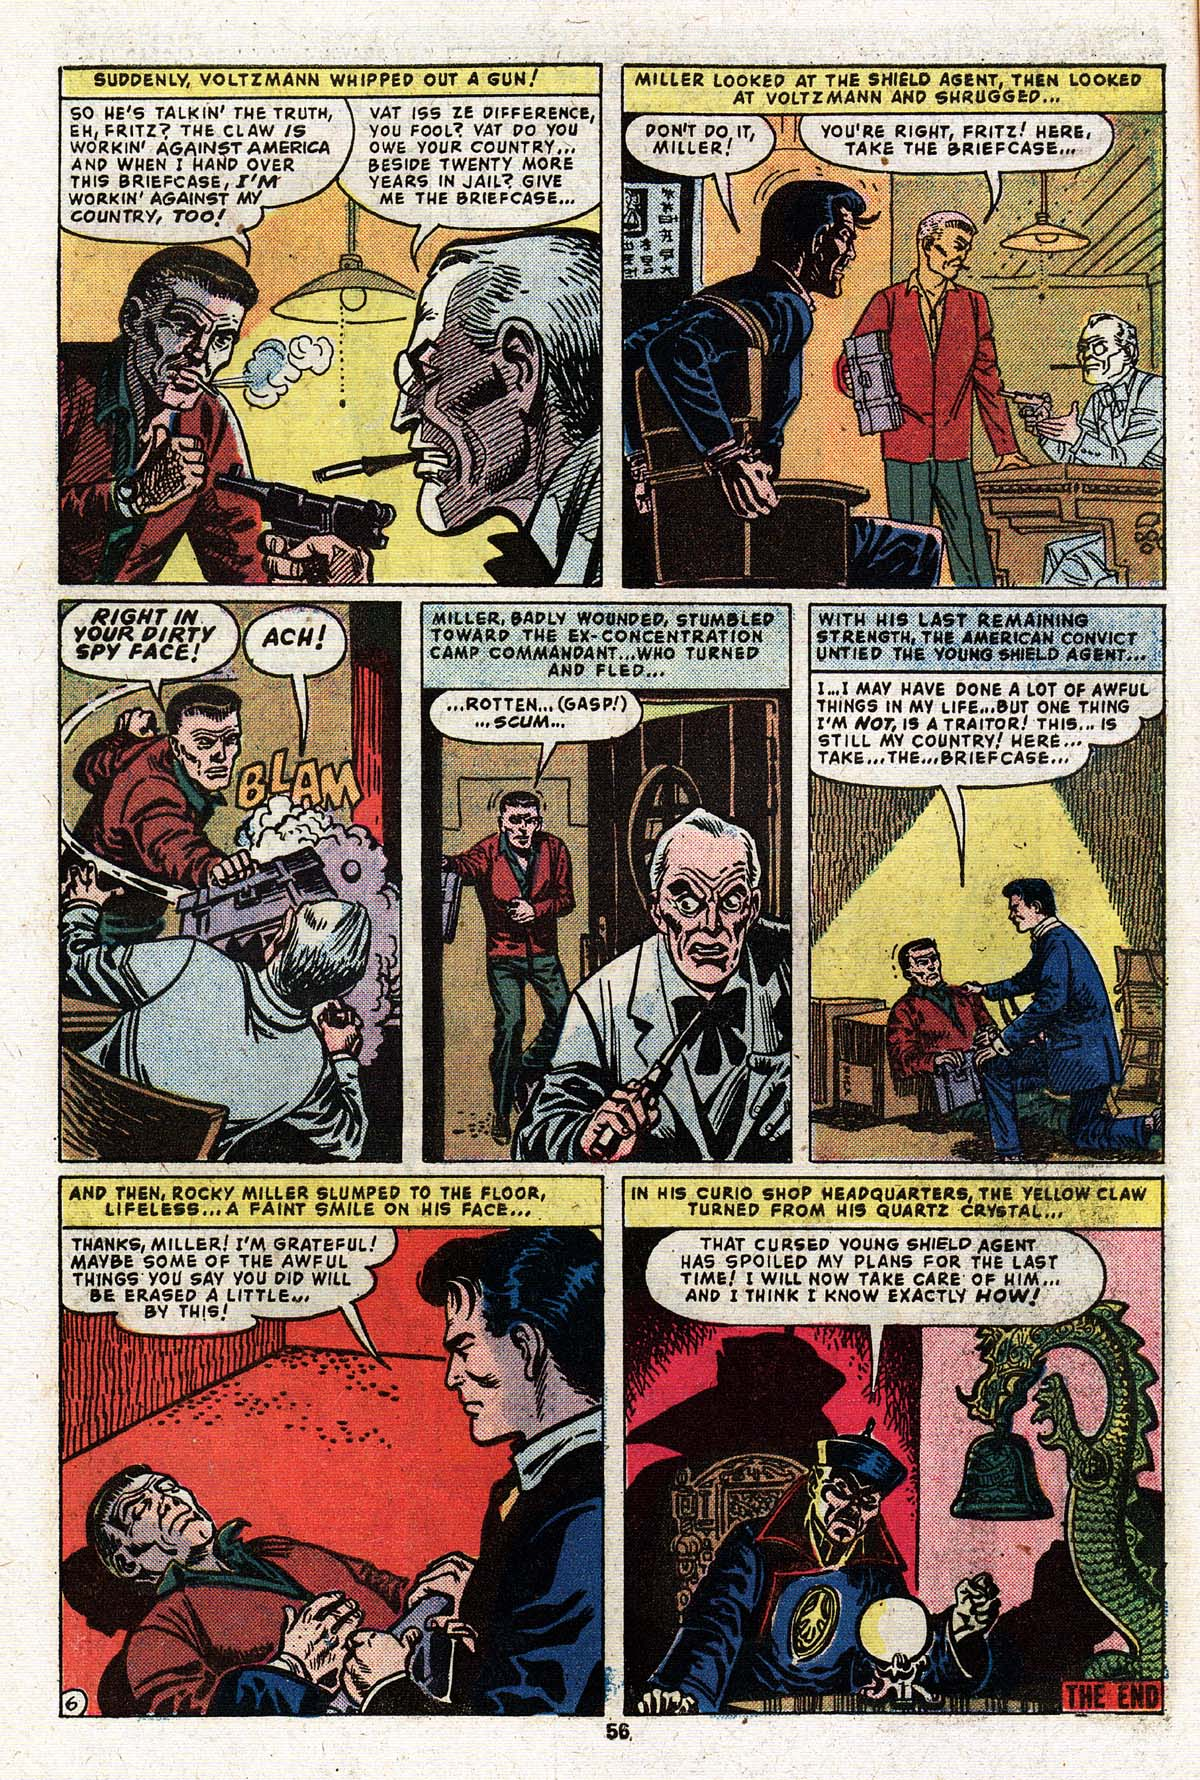 Read online Giant-Size Master of Kung Fu comic -  Issue #2 - 49